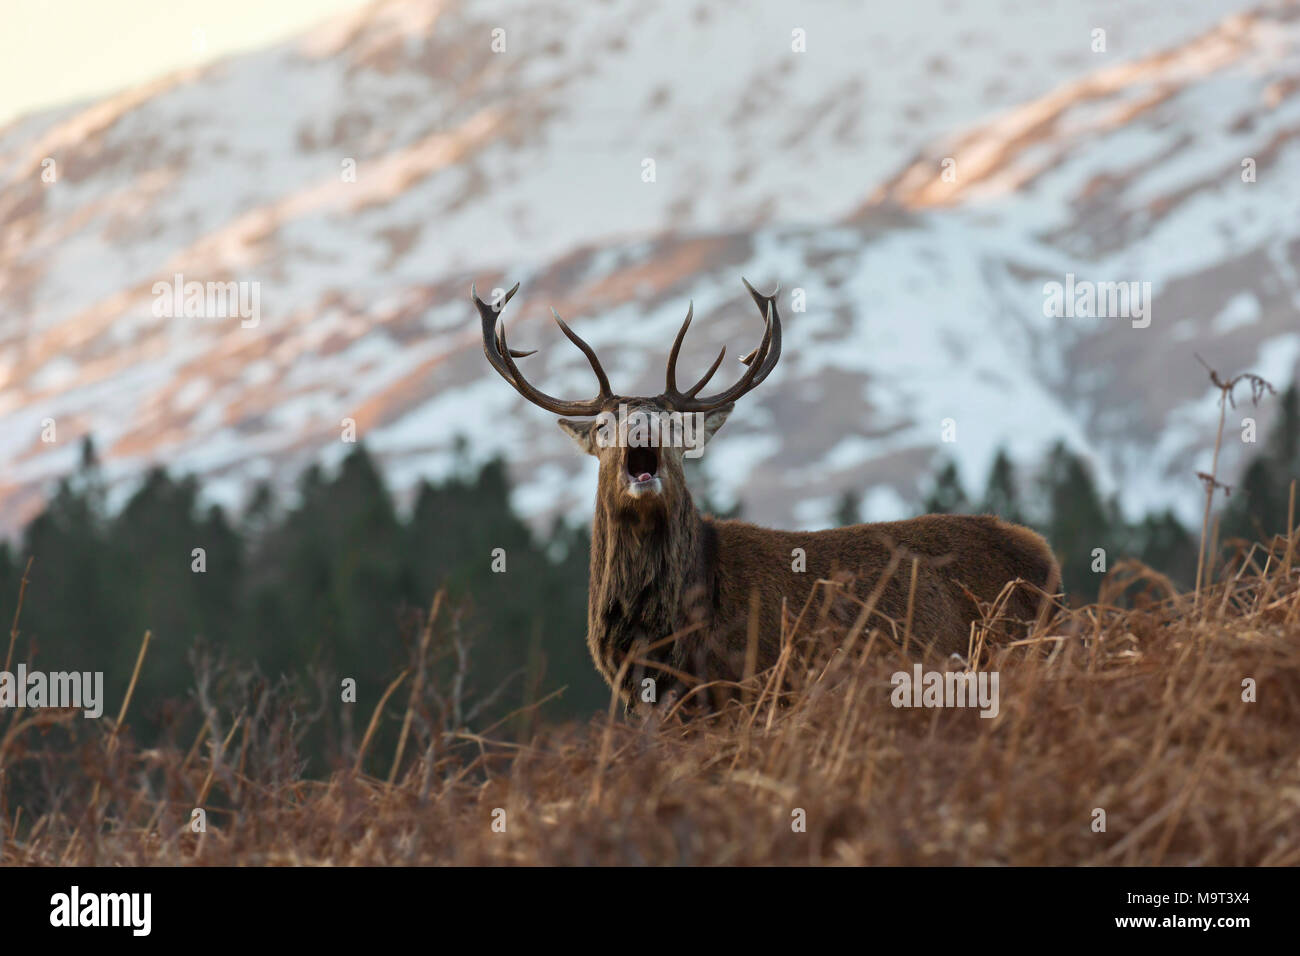 Red deer stag / male (Cervus elaphus) bellowing in the hills in winter in the Scottish Highlands, Scotland, UK Stock Photo